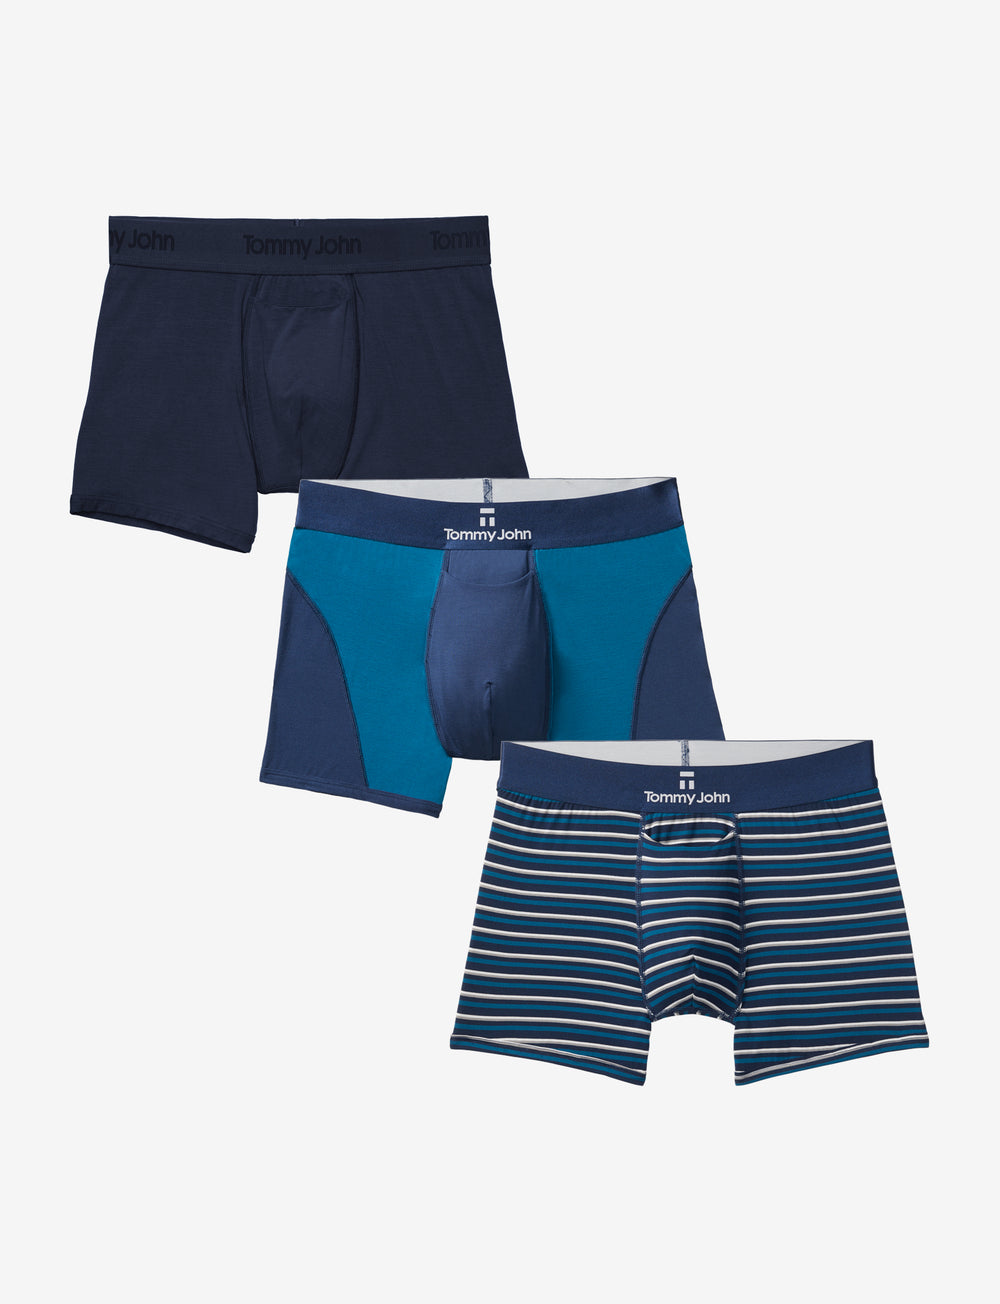 Men's Second Skin Trunk Spring Sampler Pack Details Image